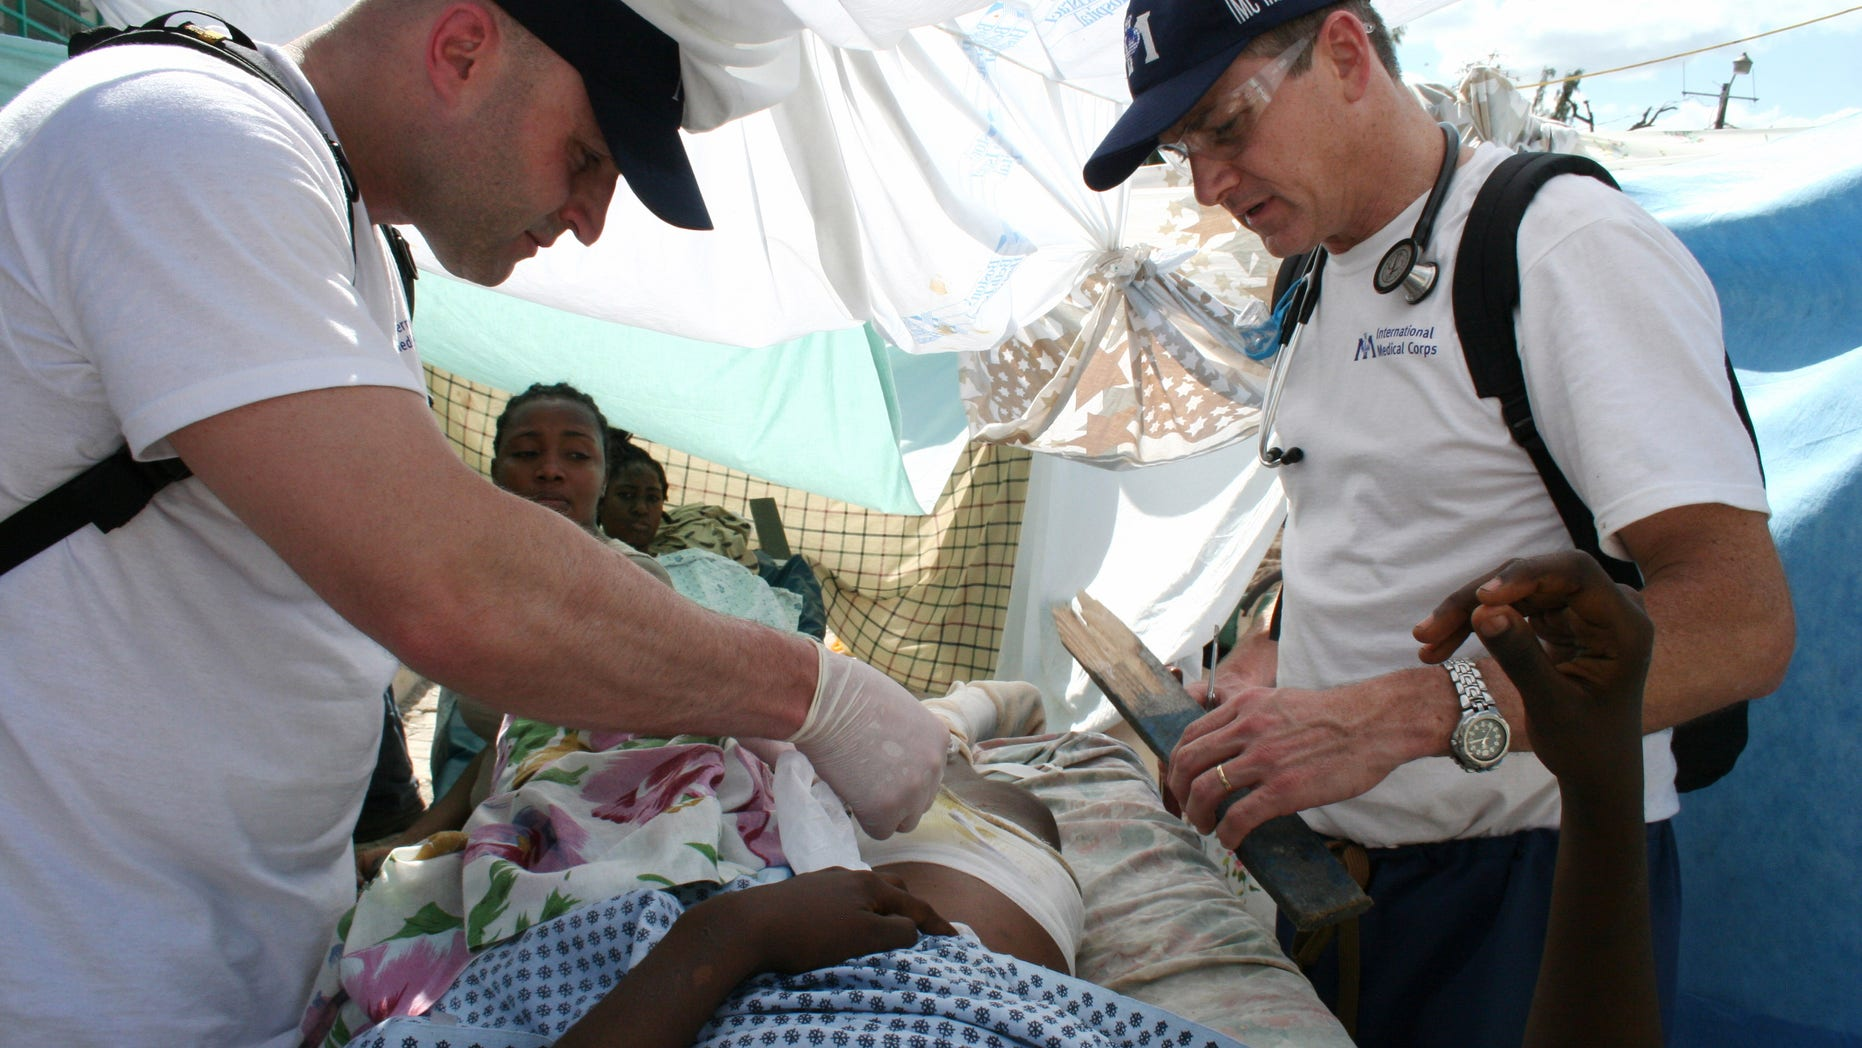 In this Jan. 16, 2010 photo provided by the International Medical Corps, Dr. Robert Fuller, right, joins Dr. Matthew Howell as they care for a person injured in the 2010 earthquake in Port-ua-Prince, Haiti.  AP Photo/International Medical Corps, Margaret Aguirre